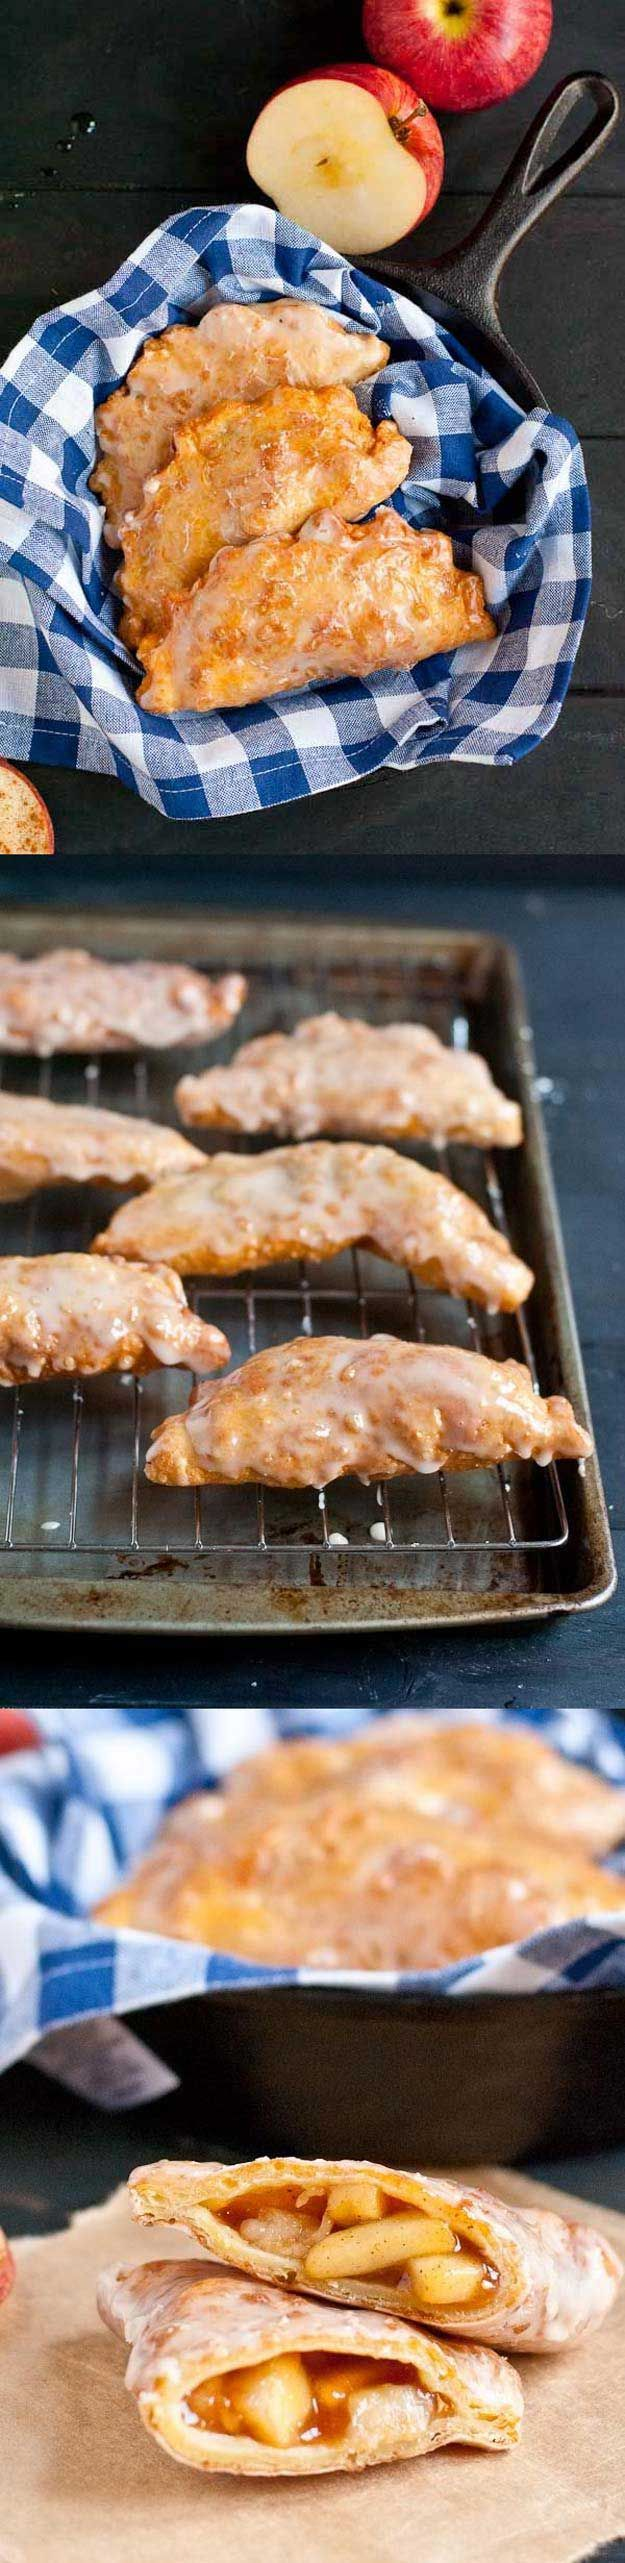 Healthy Desserts To Try Tonight - Amish Apple Fry Pies - Easy And Yummy DIY Heal...